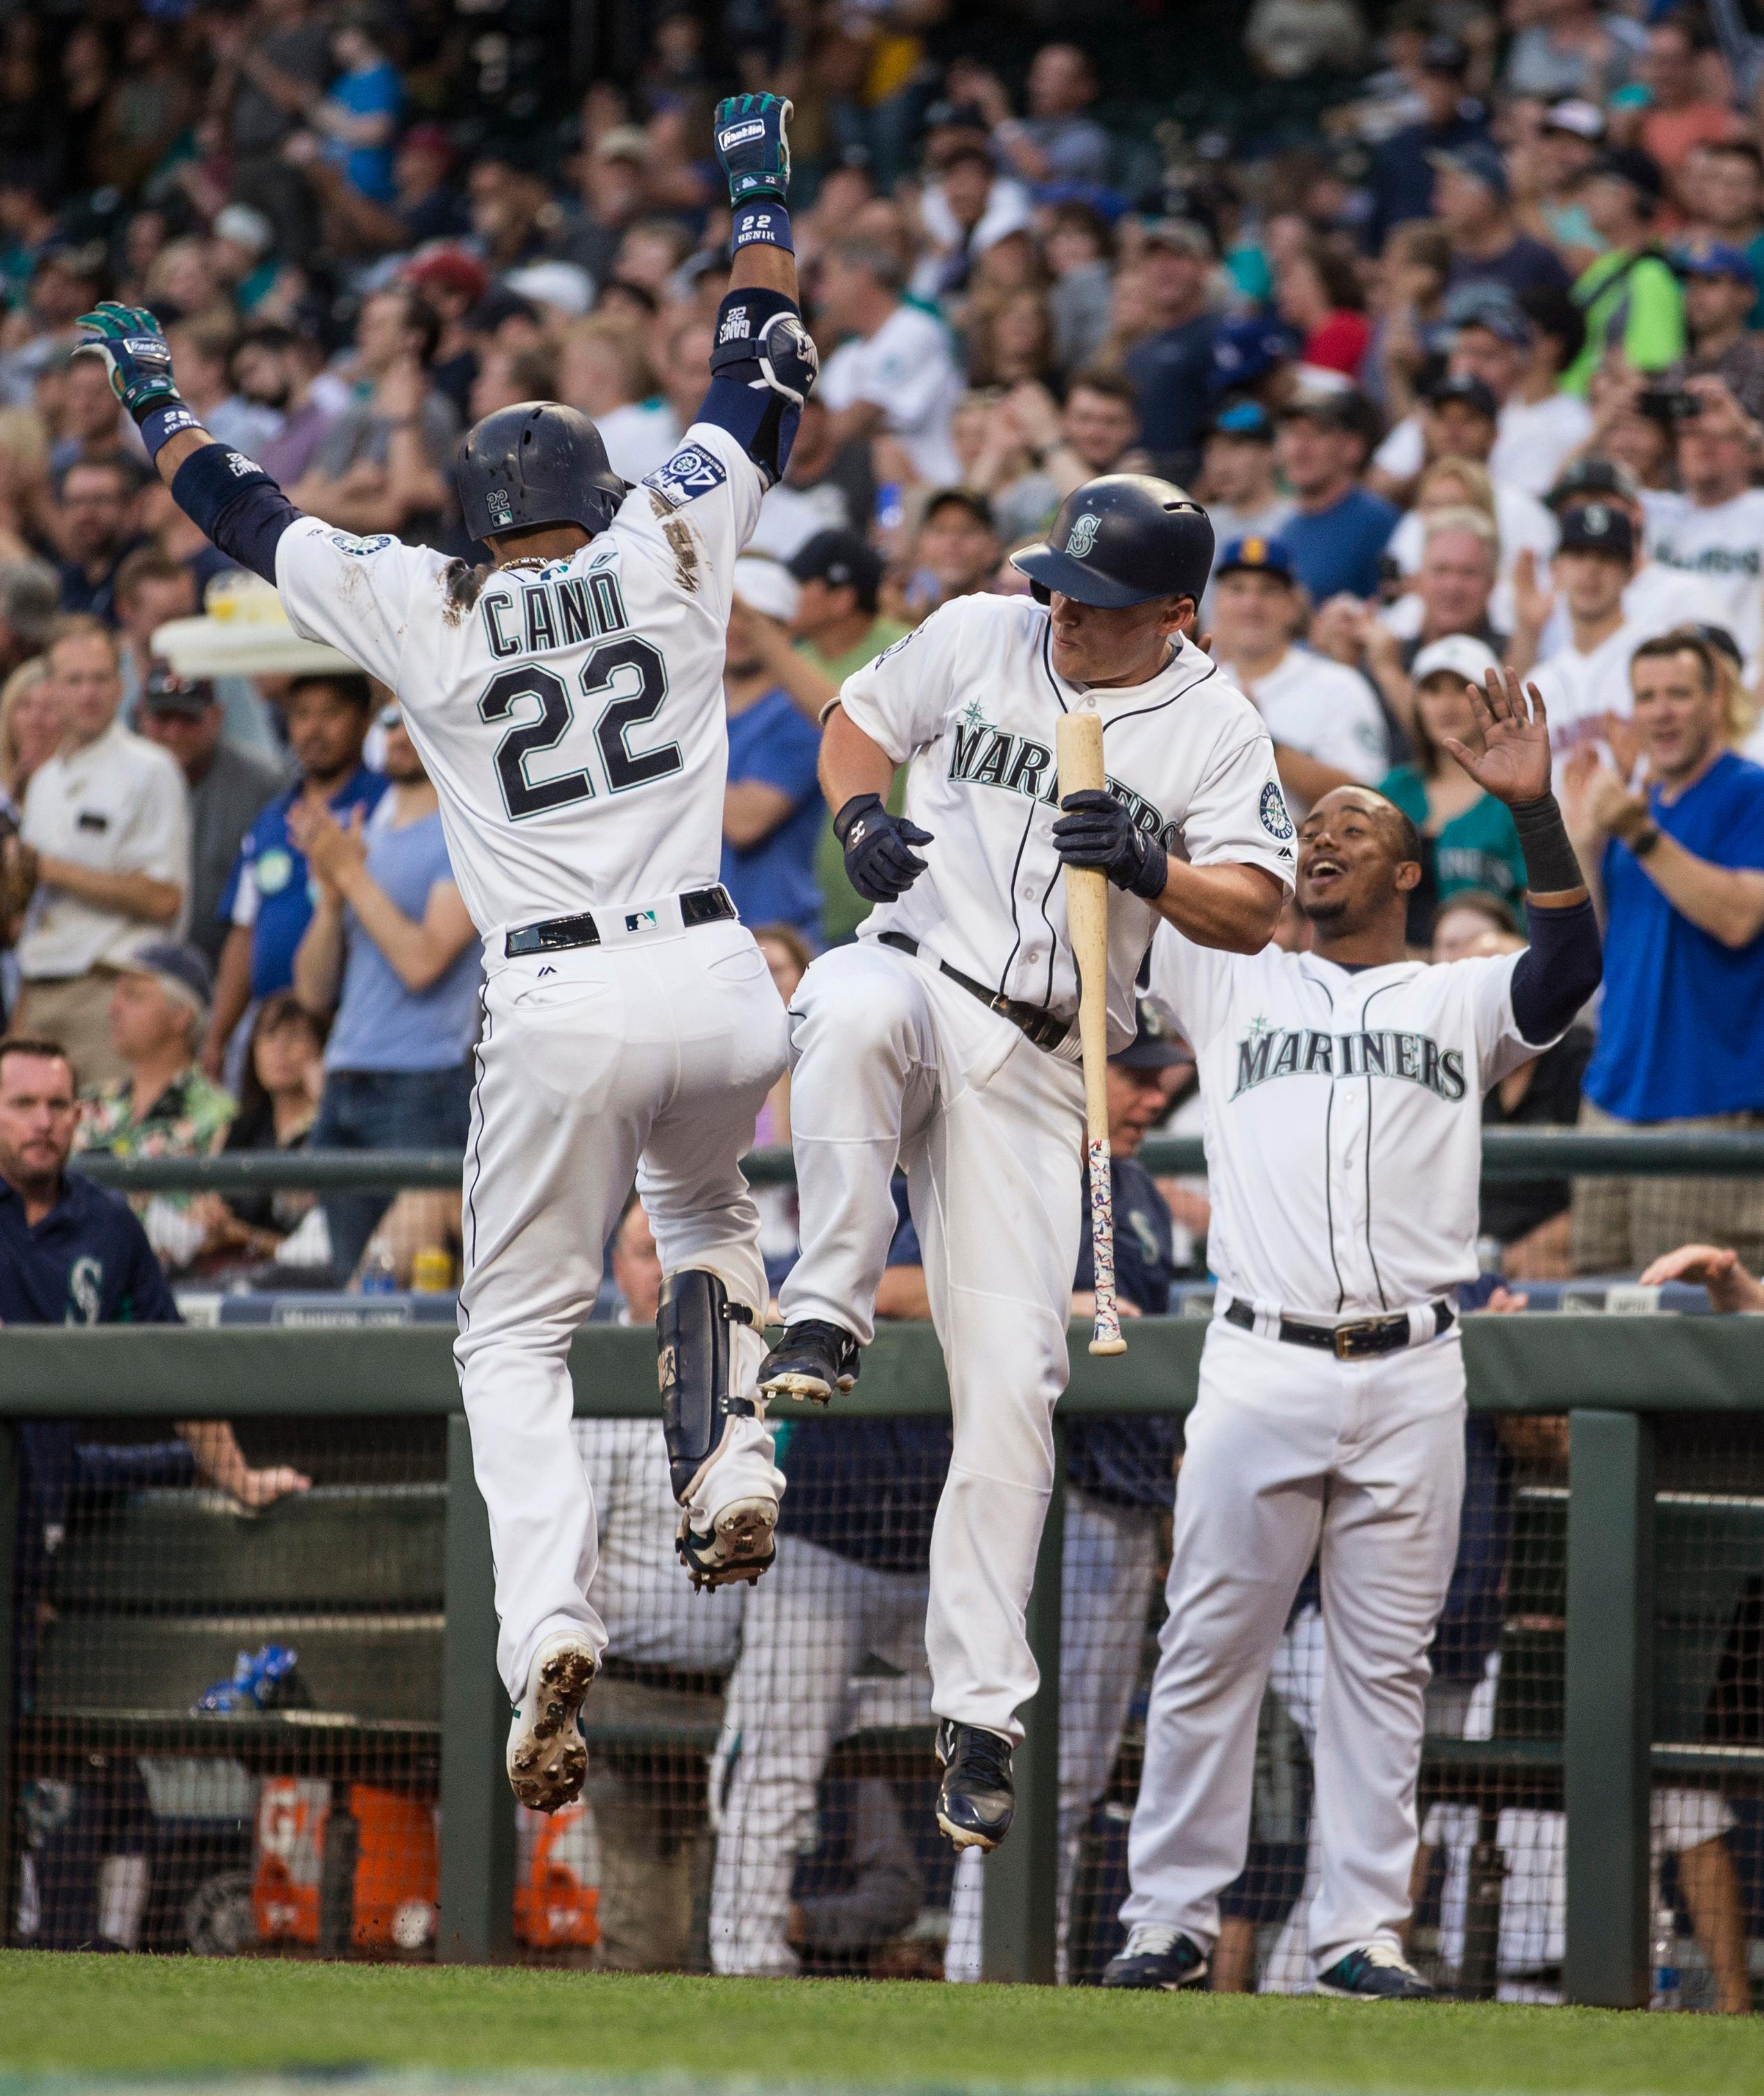 Seattle Mariners' Kyle Seager, center, Robinson Cano, left, and Jean Segura celebrate a two-run home run by Cano off of Oakland Athletics starting pitcher Jharel Cotton during the third inning of a baseball game Saturday, Sept. 2, 2017, in Seattle. (AP Photo/Stephen Brashear)